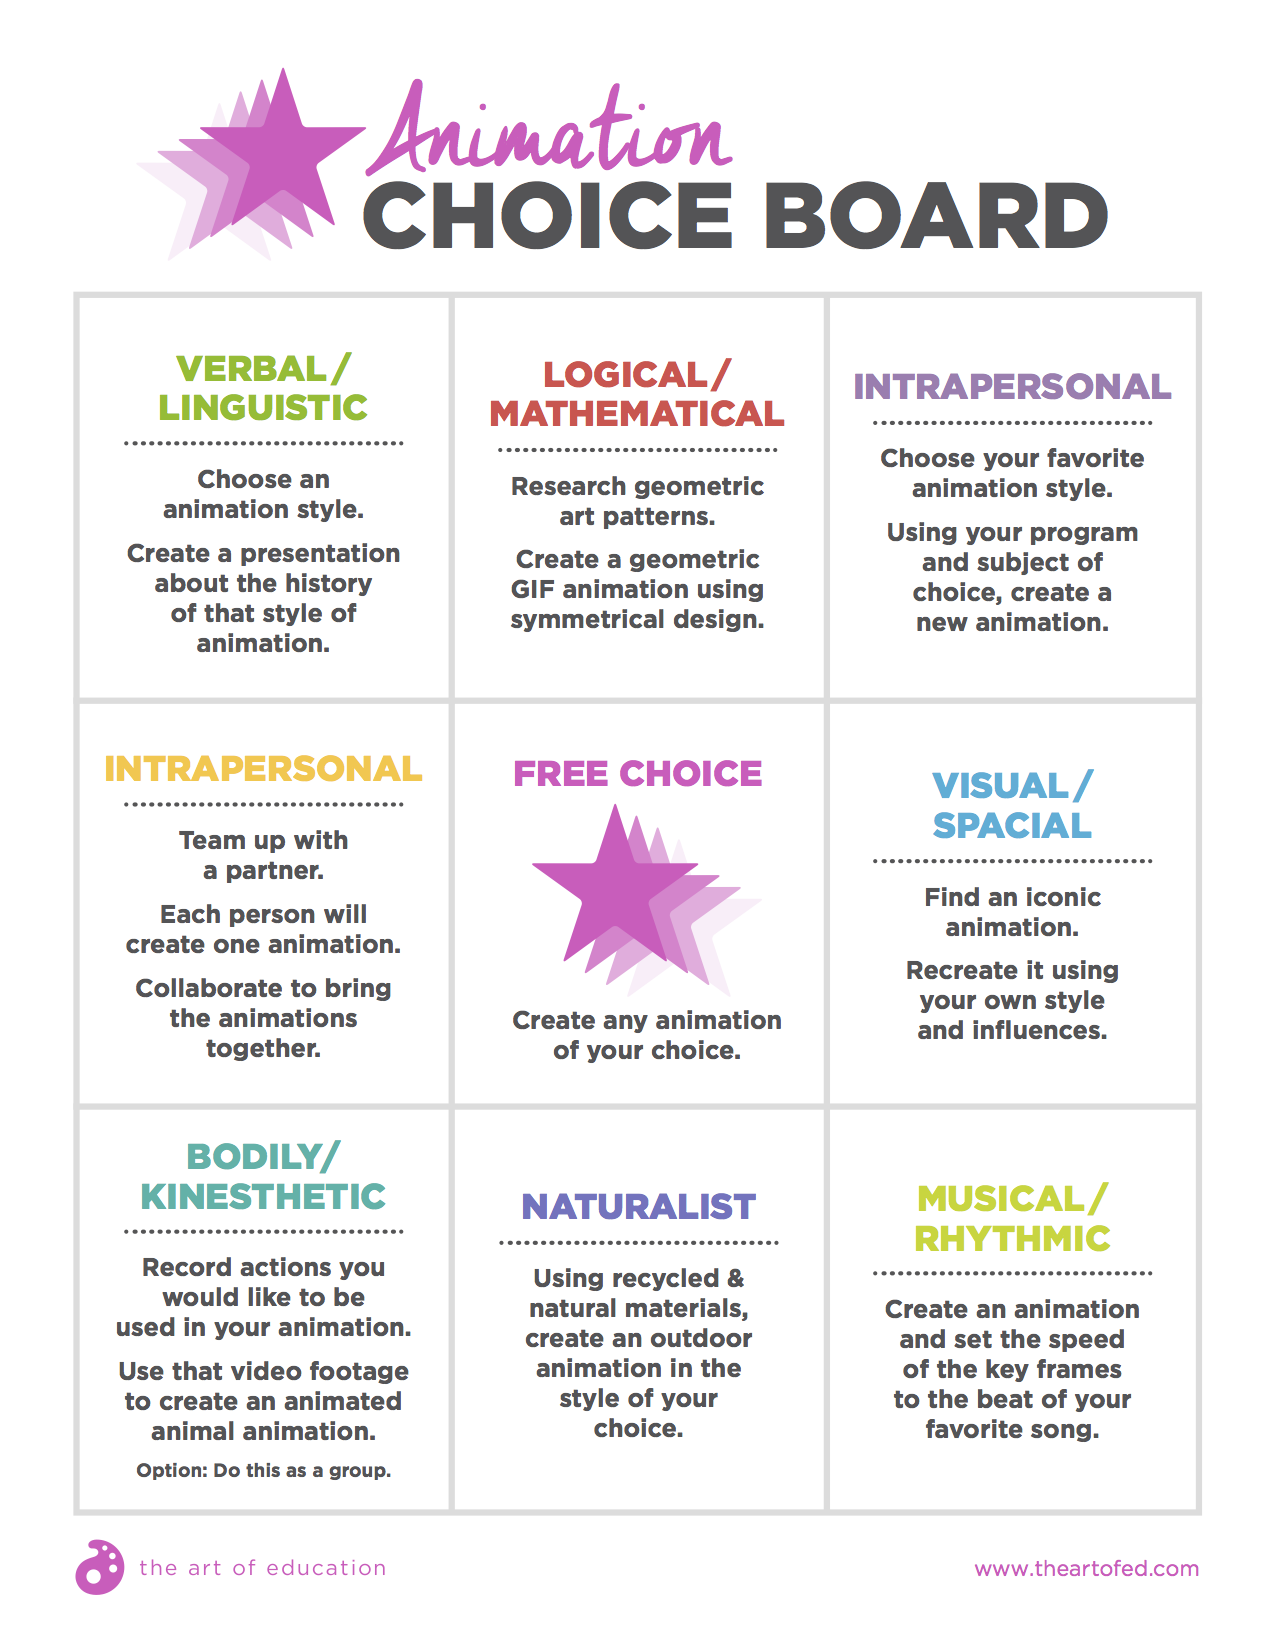 4 Downloadable Resources To Help You Meet The Needs Of All Students